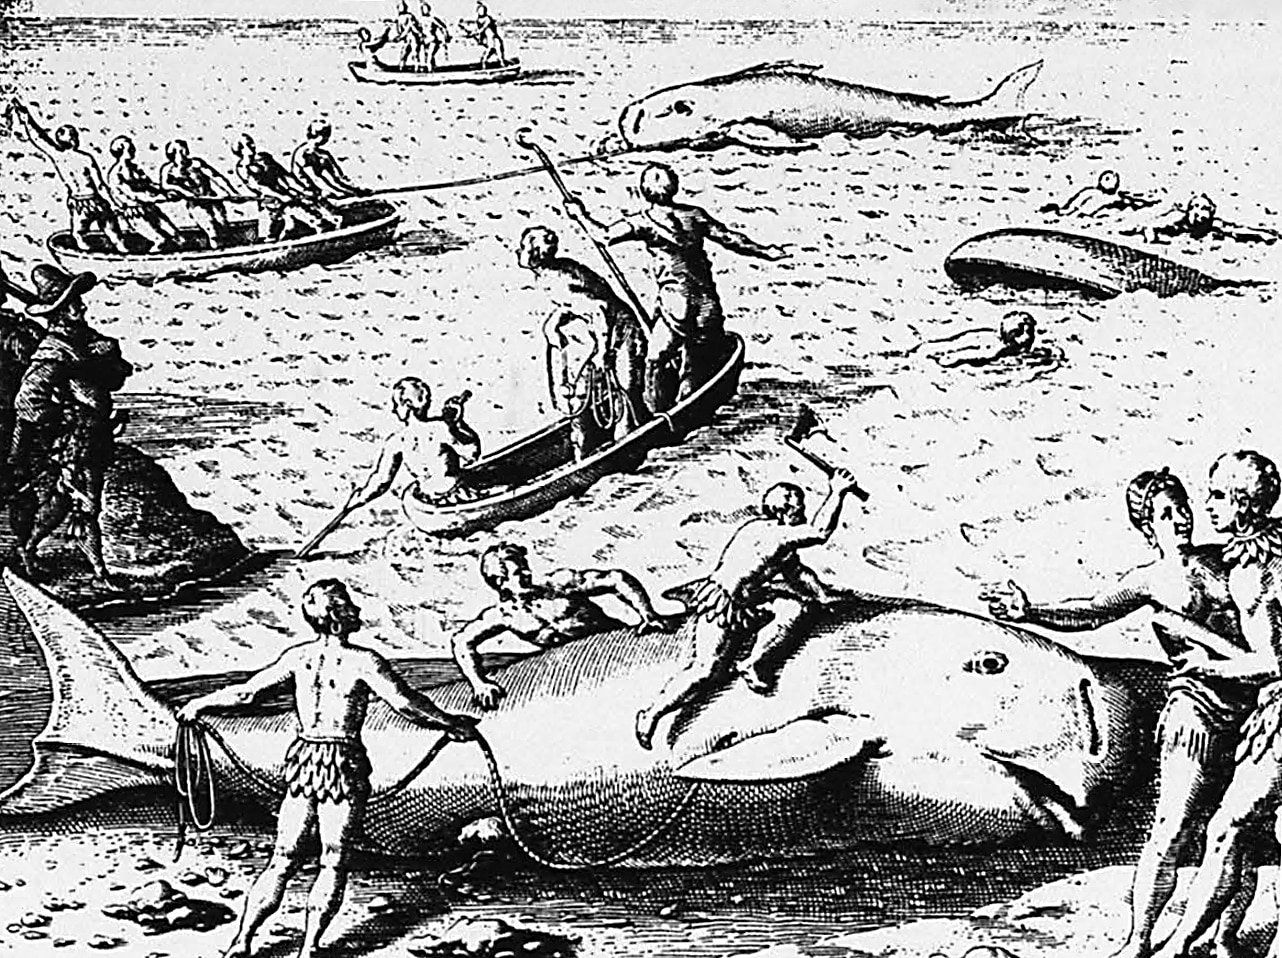 Theodore-Debry-woodcut-c.1598-Contact-Period-Atlatic-Coast-from-Gaynell-Stone-1991-map Whaling Jeremy Dennis On This Site